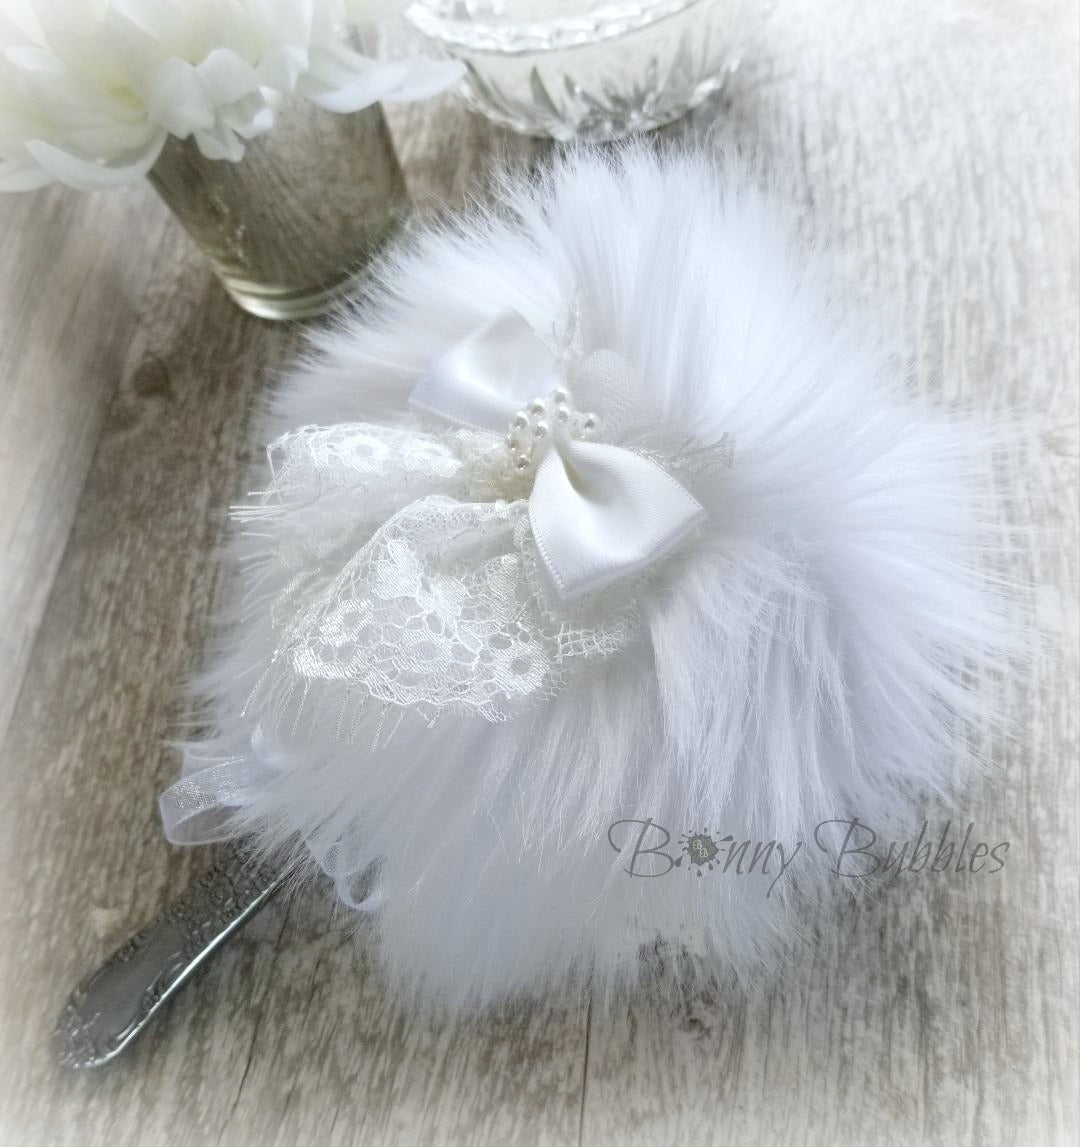 WHITE Powder Puff Wand - Fluffy Puff with handle - country chic - silky soft faux fur plush by Bonny Bubbles